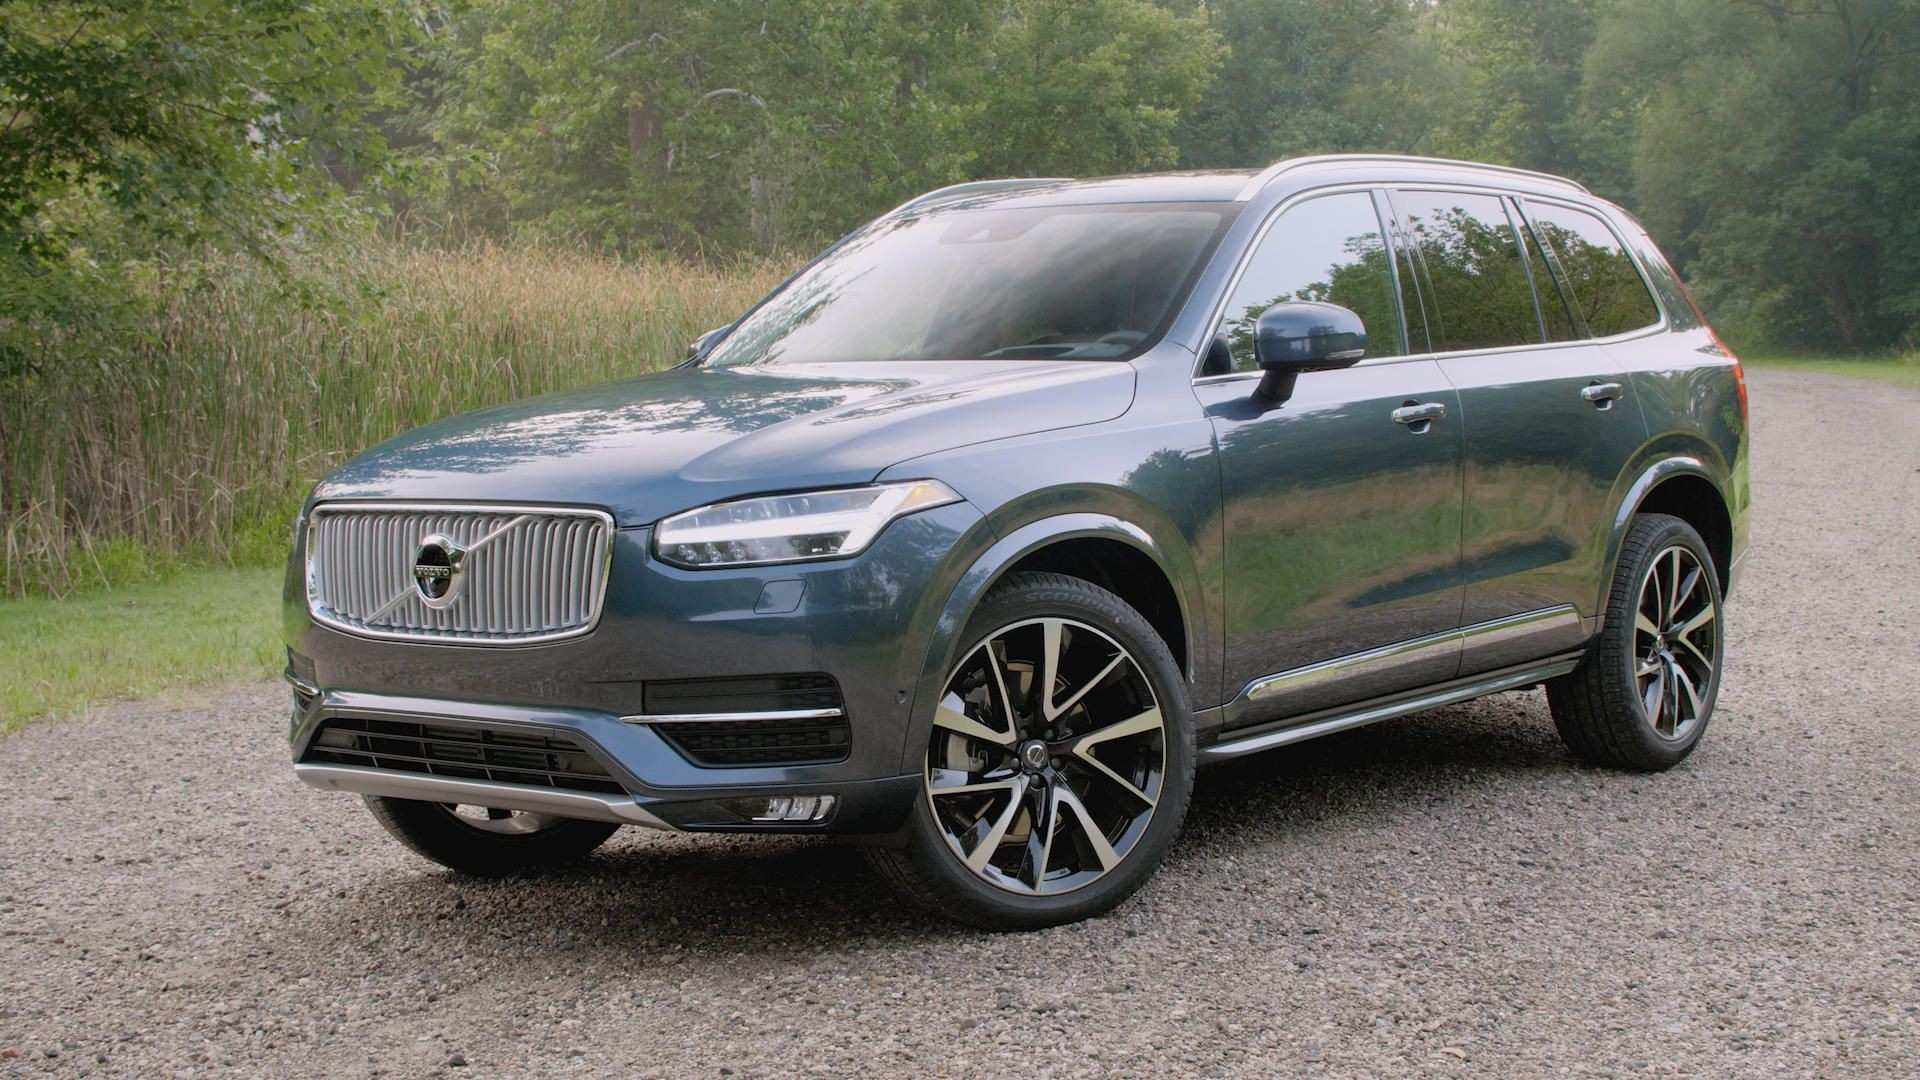 68 Best Review 2019 Volvo Xc90 Release Date Performance with 2019 Volvo Xc90 Release Date